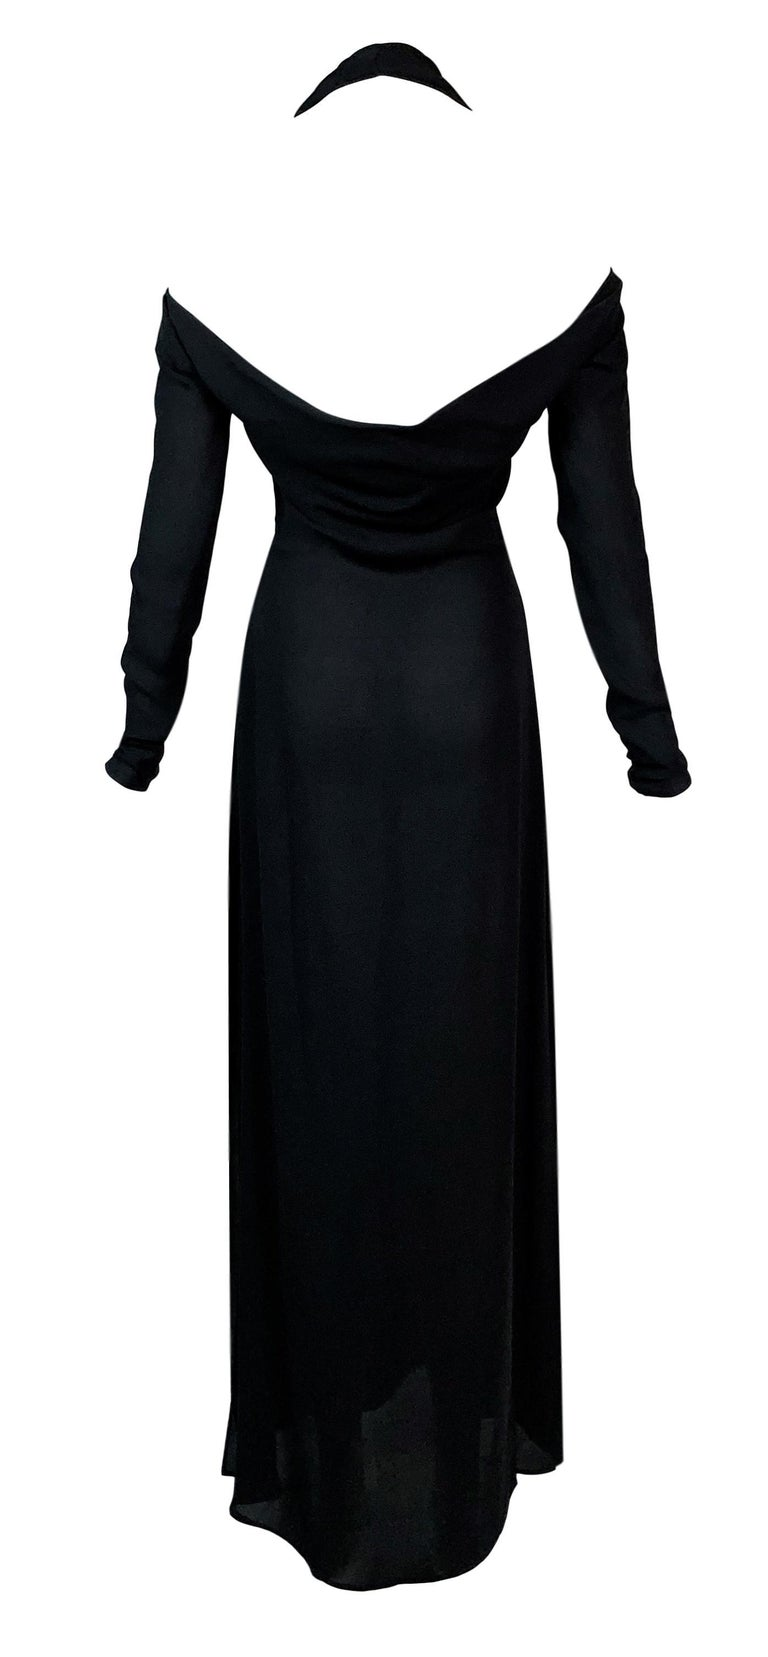 Black 2001 Yves Saint Laurent Tom Ford Semi-Sheer Plunging High Slit Gown Maxi Dress For Sale